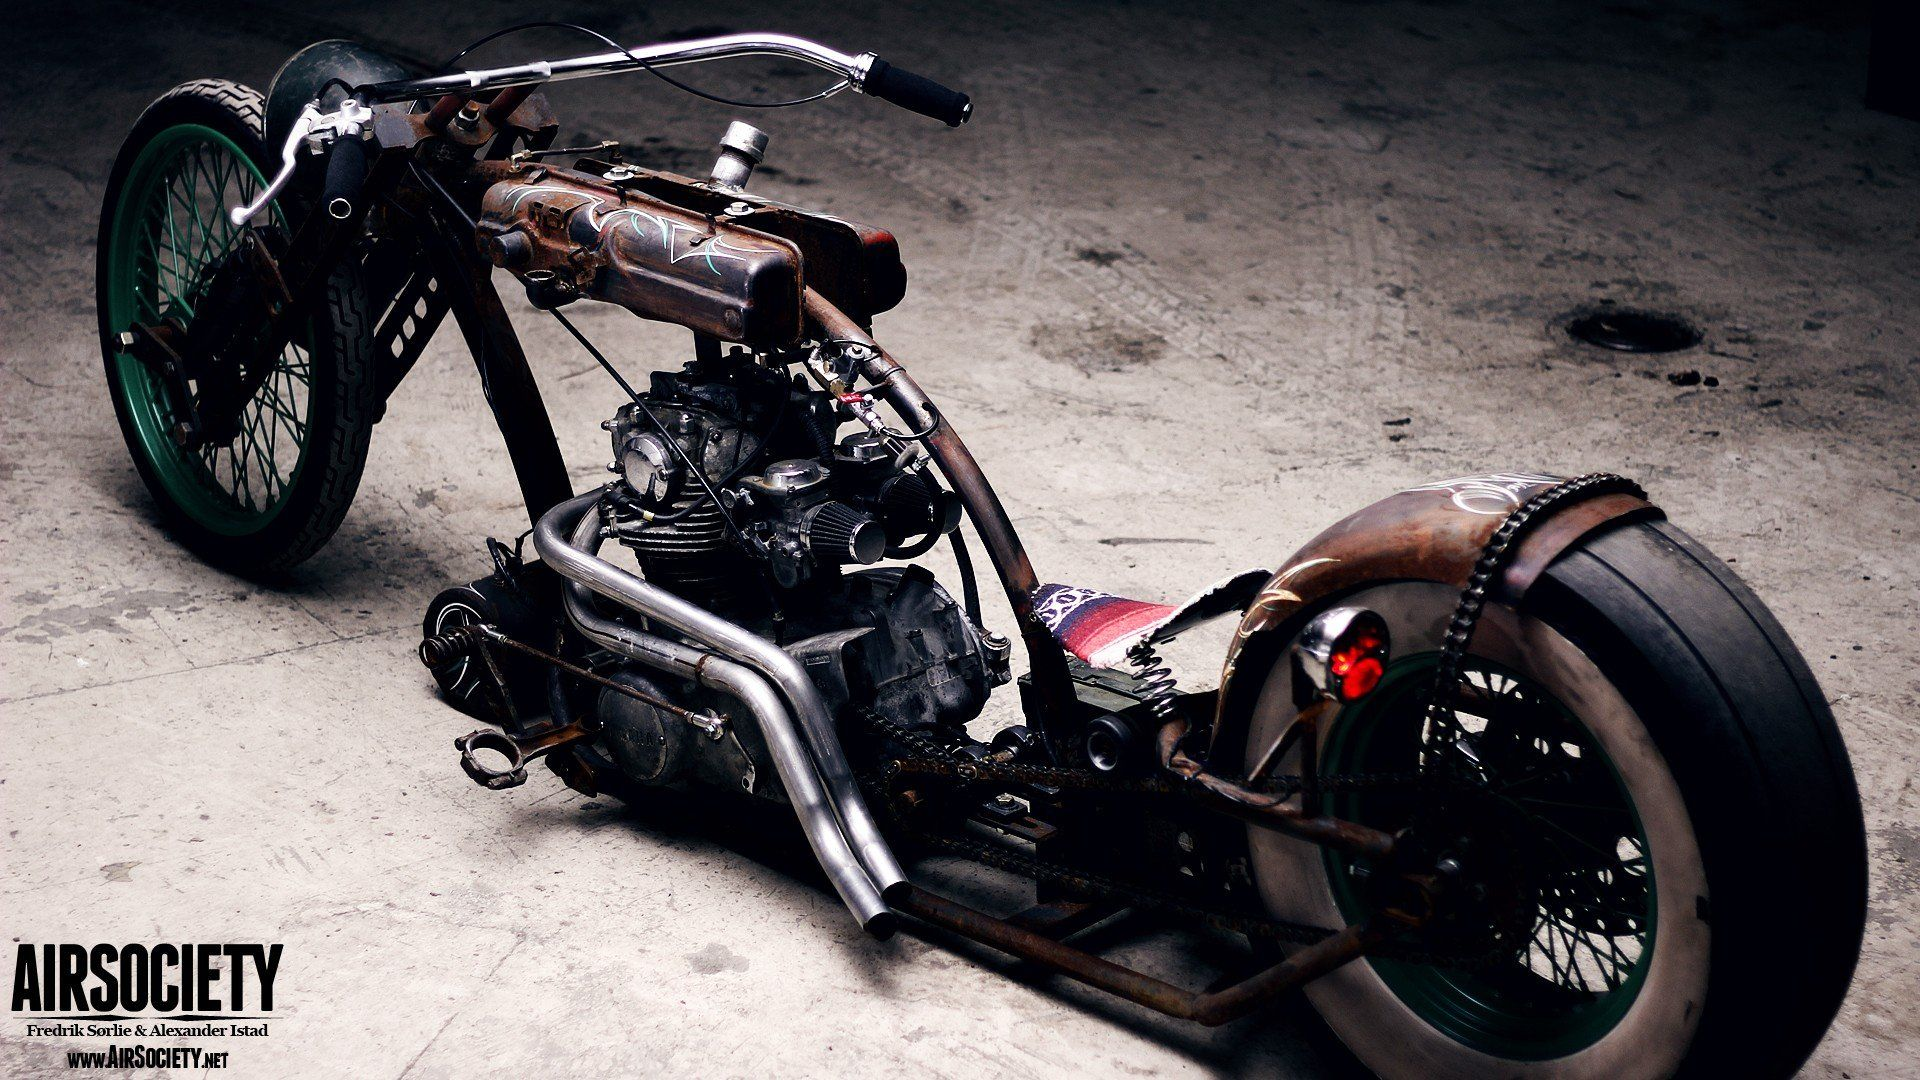 1920x1080 Bike engines chopper ride Yamaha rust suspension motorbikes air ...